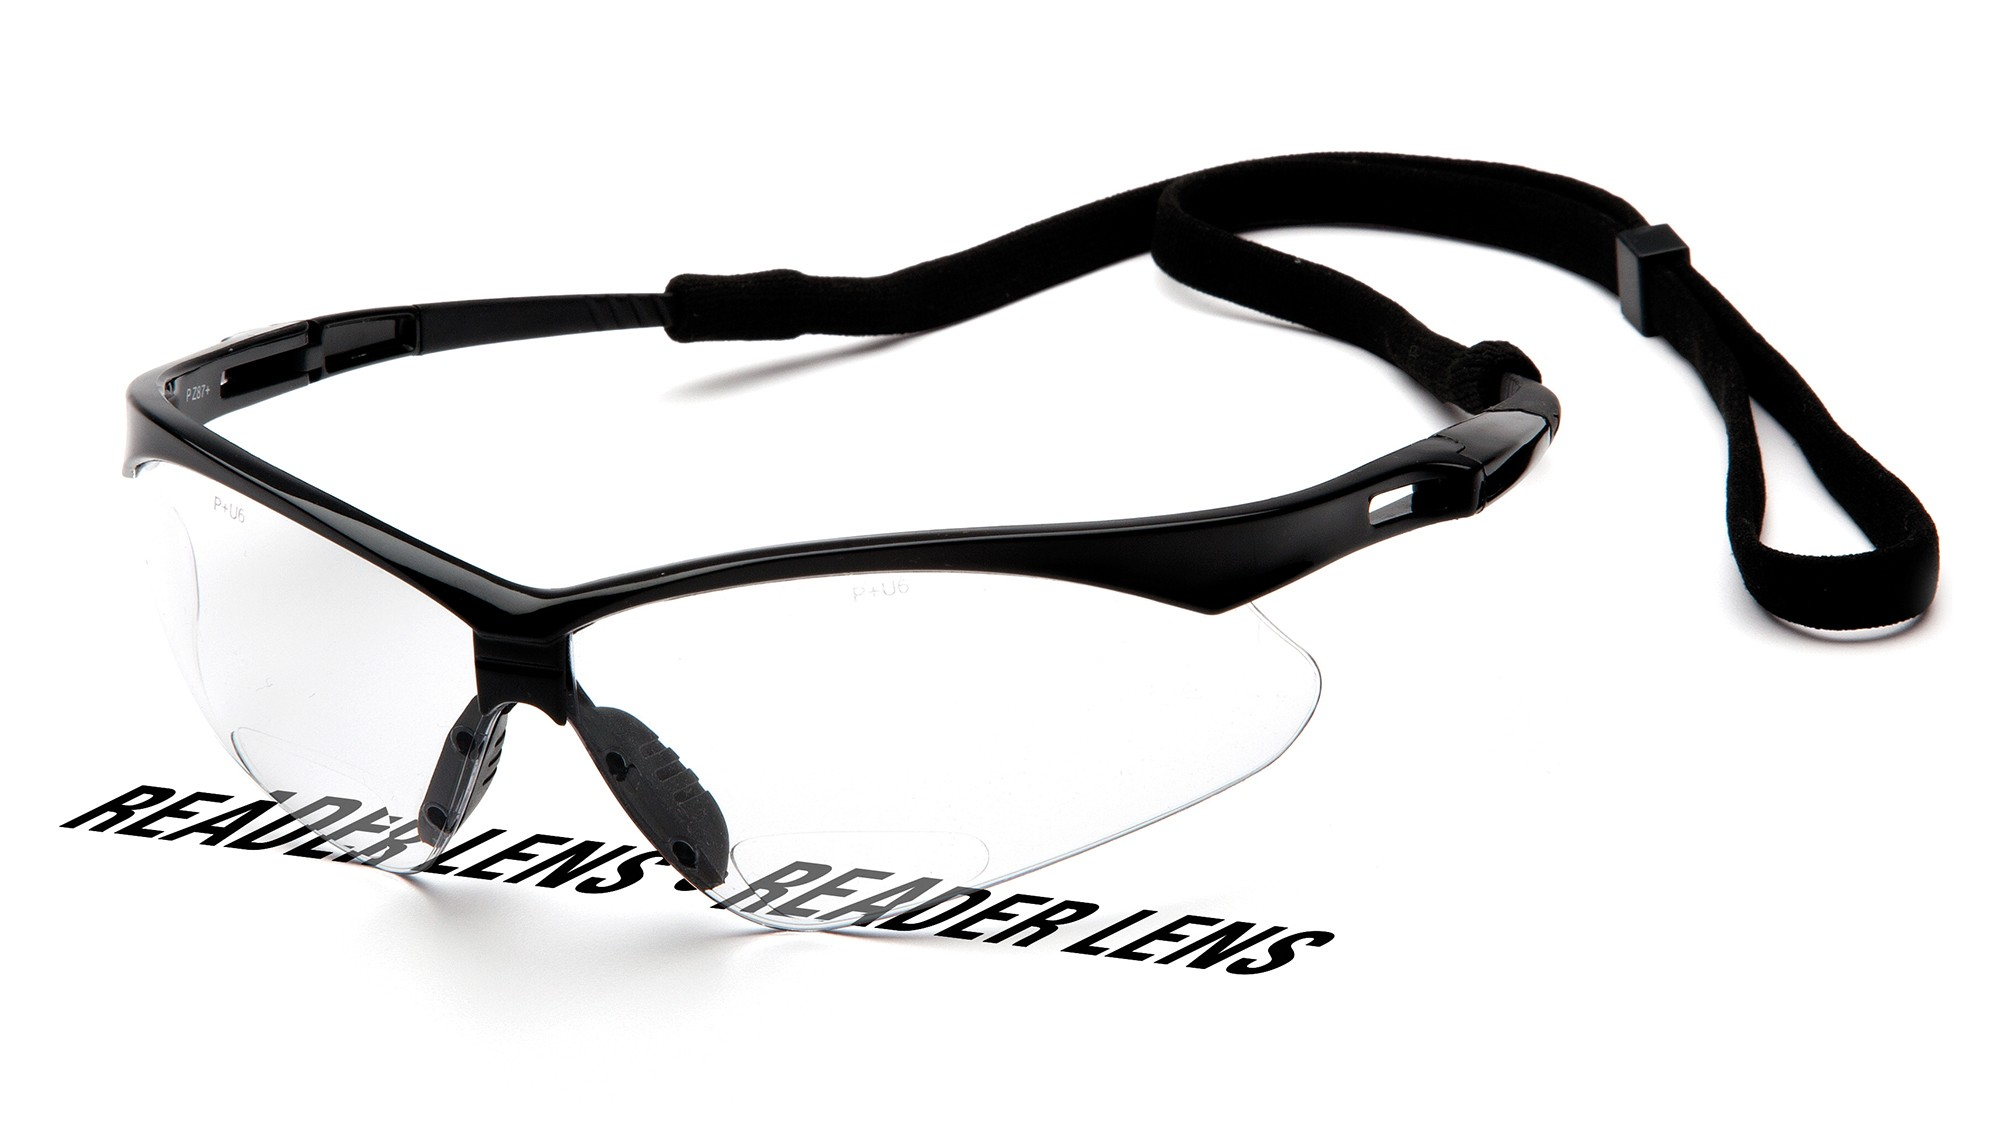 a4fbc9d441 Pyramex PMXTREME Readers Safety Glasses Black Frame Clear ...